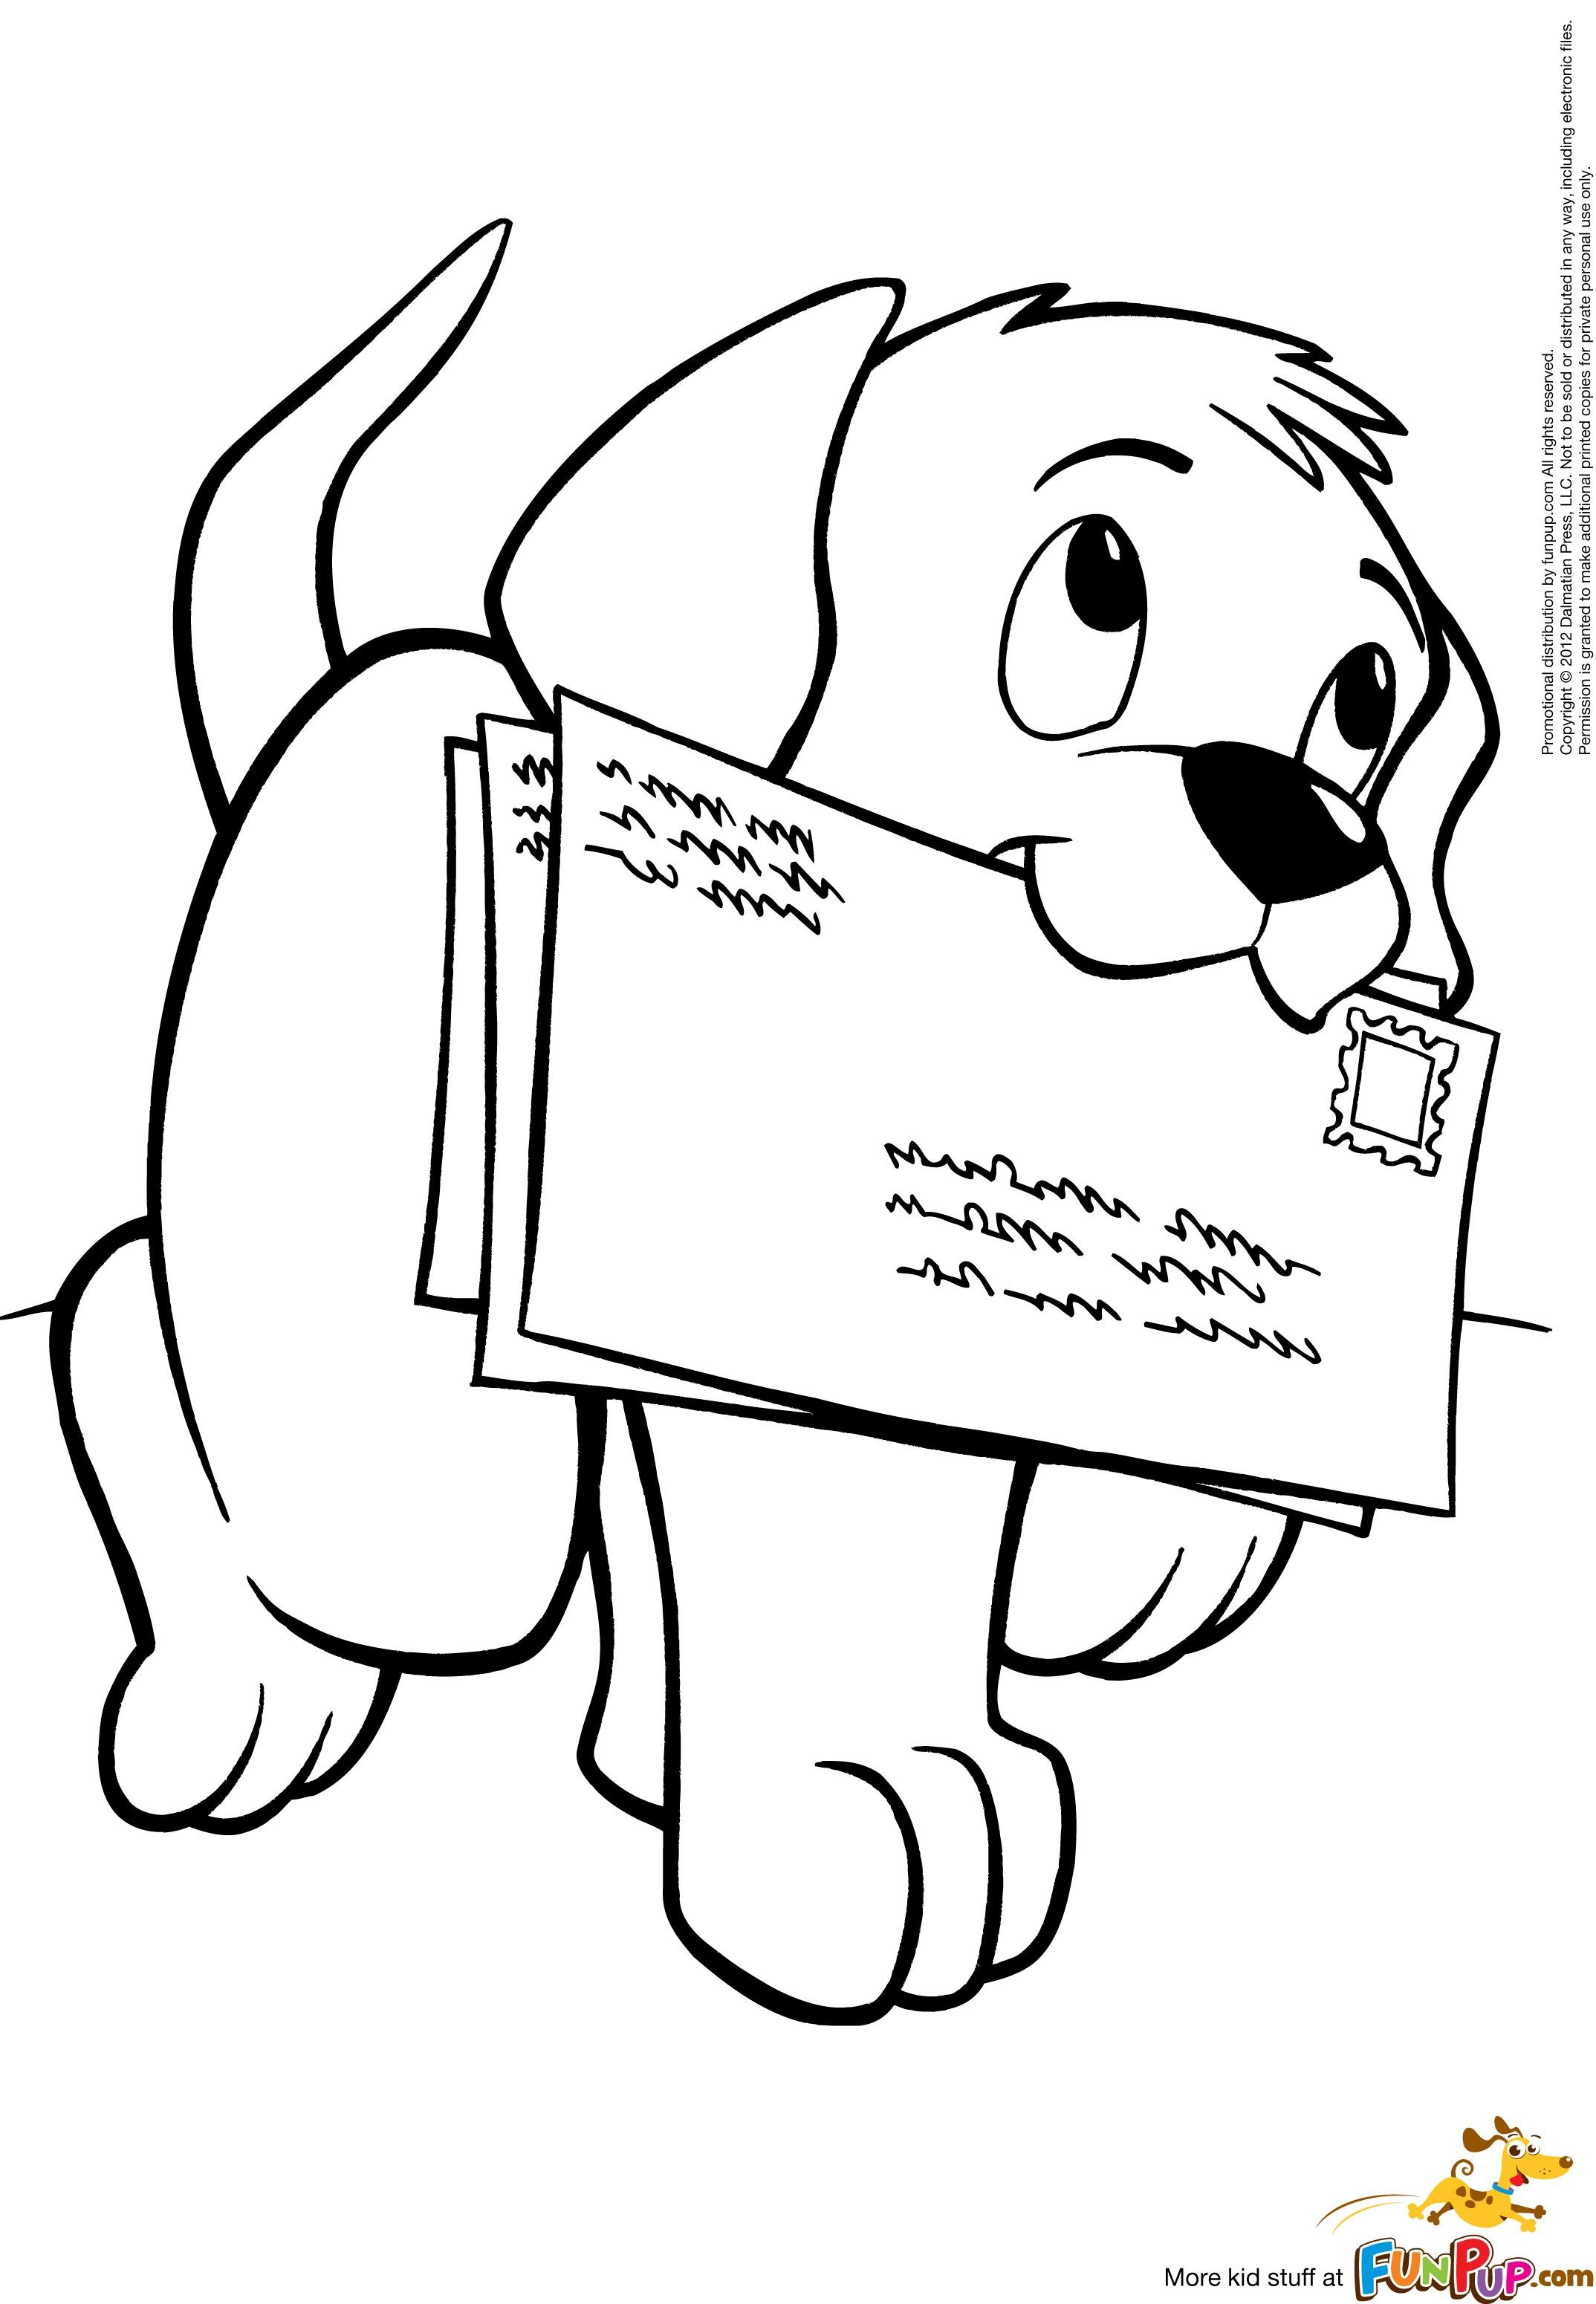 Kids coloring book pages free - Free Printable Coloring Pages